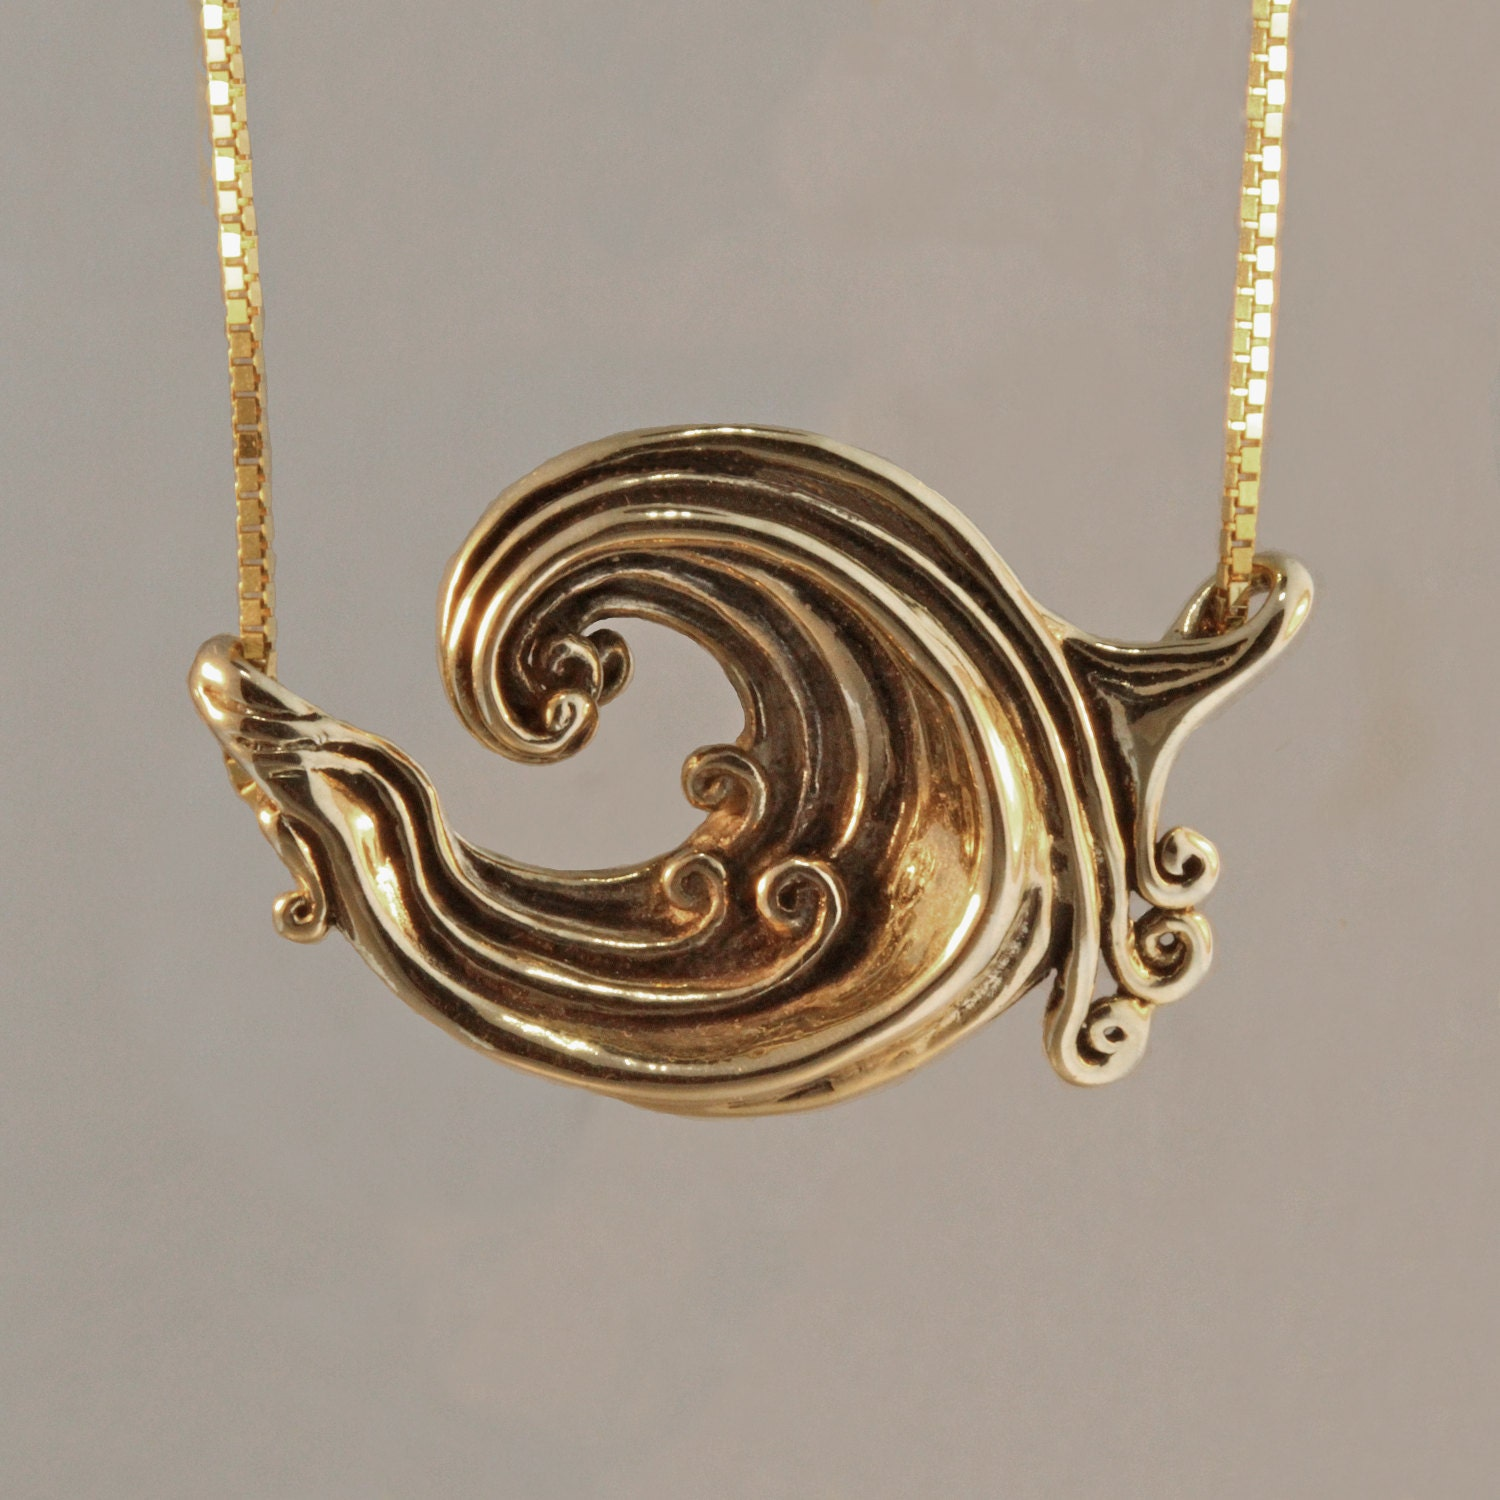 Wave Necklace Gold Rip Curl Wave Pendant Surfer Jewelry Wave